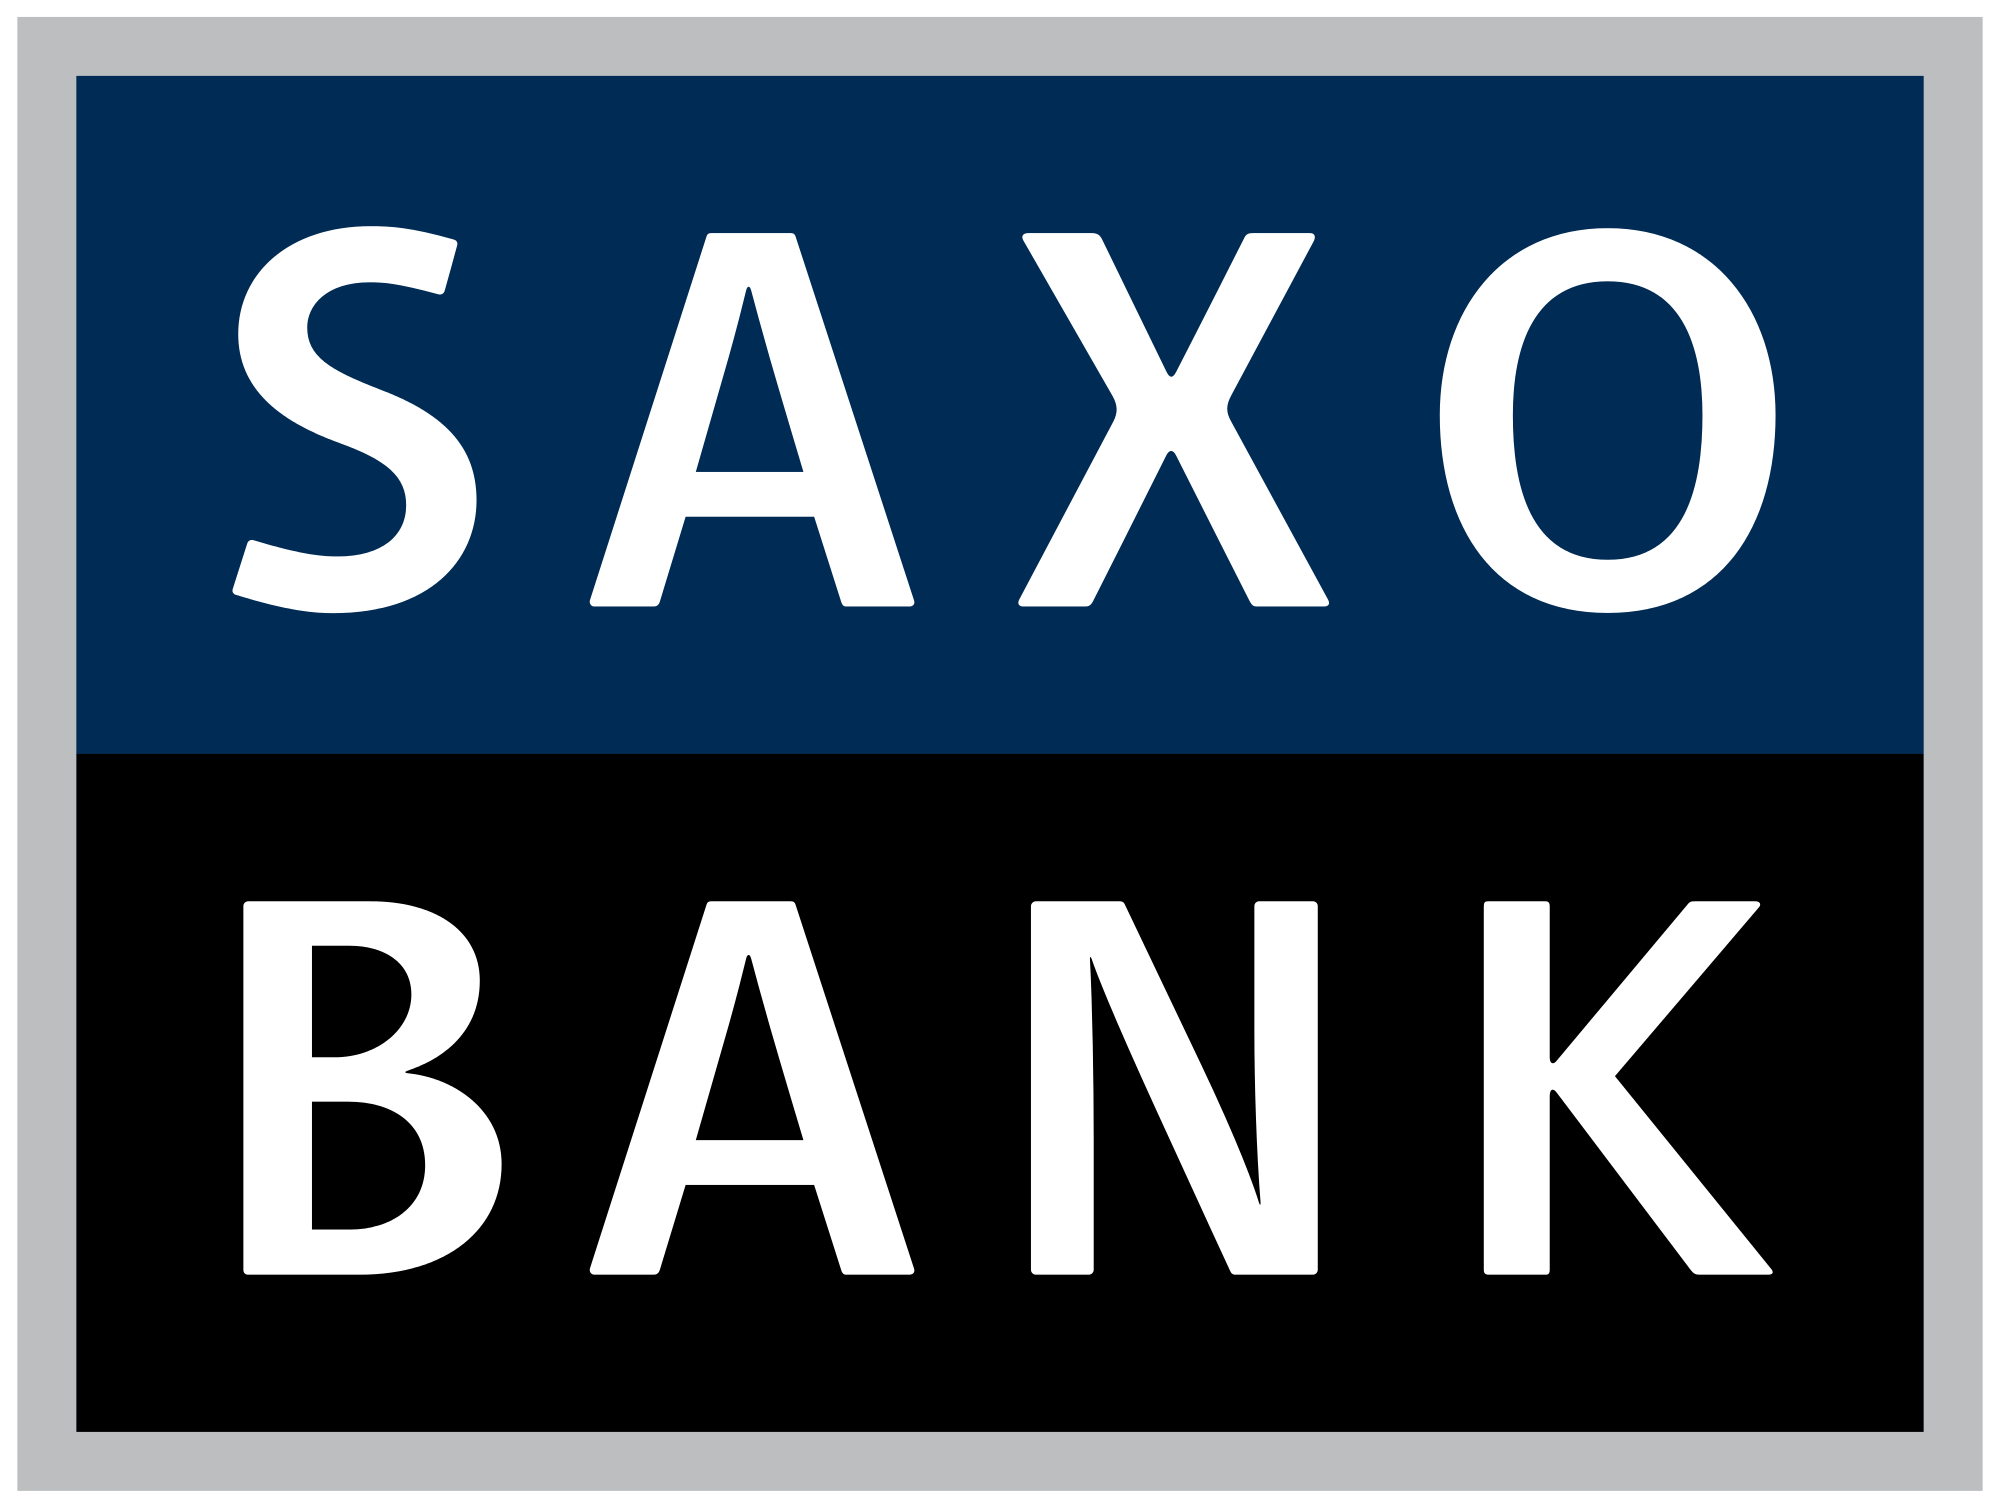 Saxo_Bank_logo.svg.png